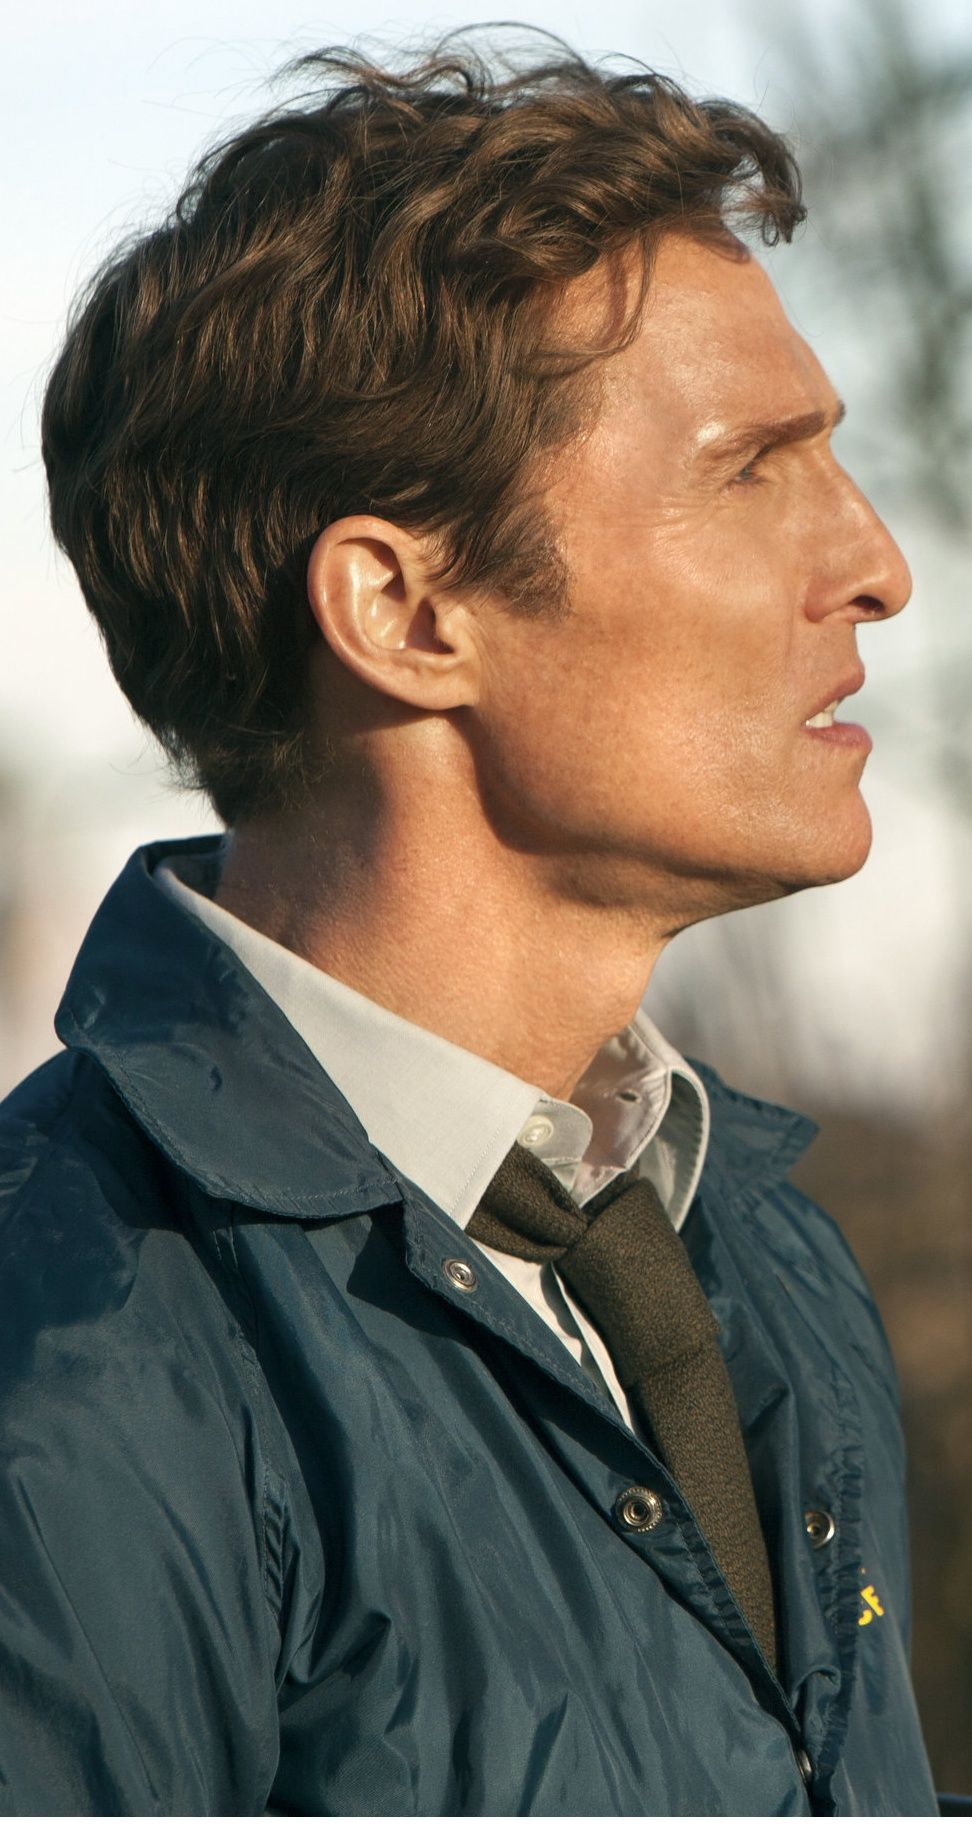 Matthew McConaughey as Detective Rustin Cohle | Matthew ...